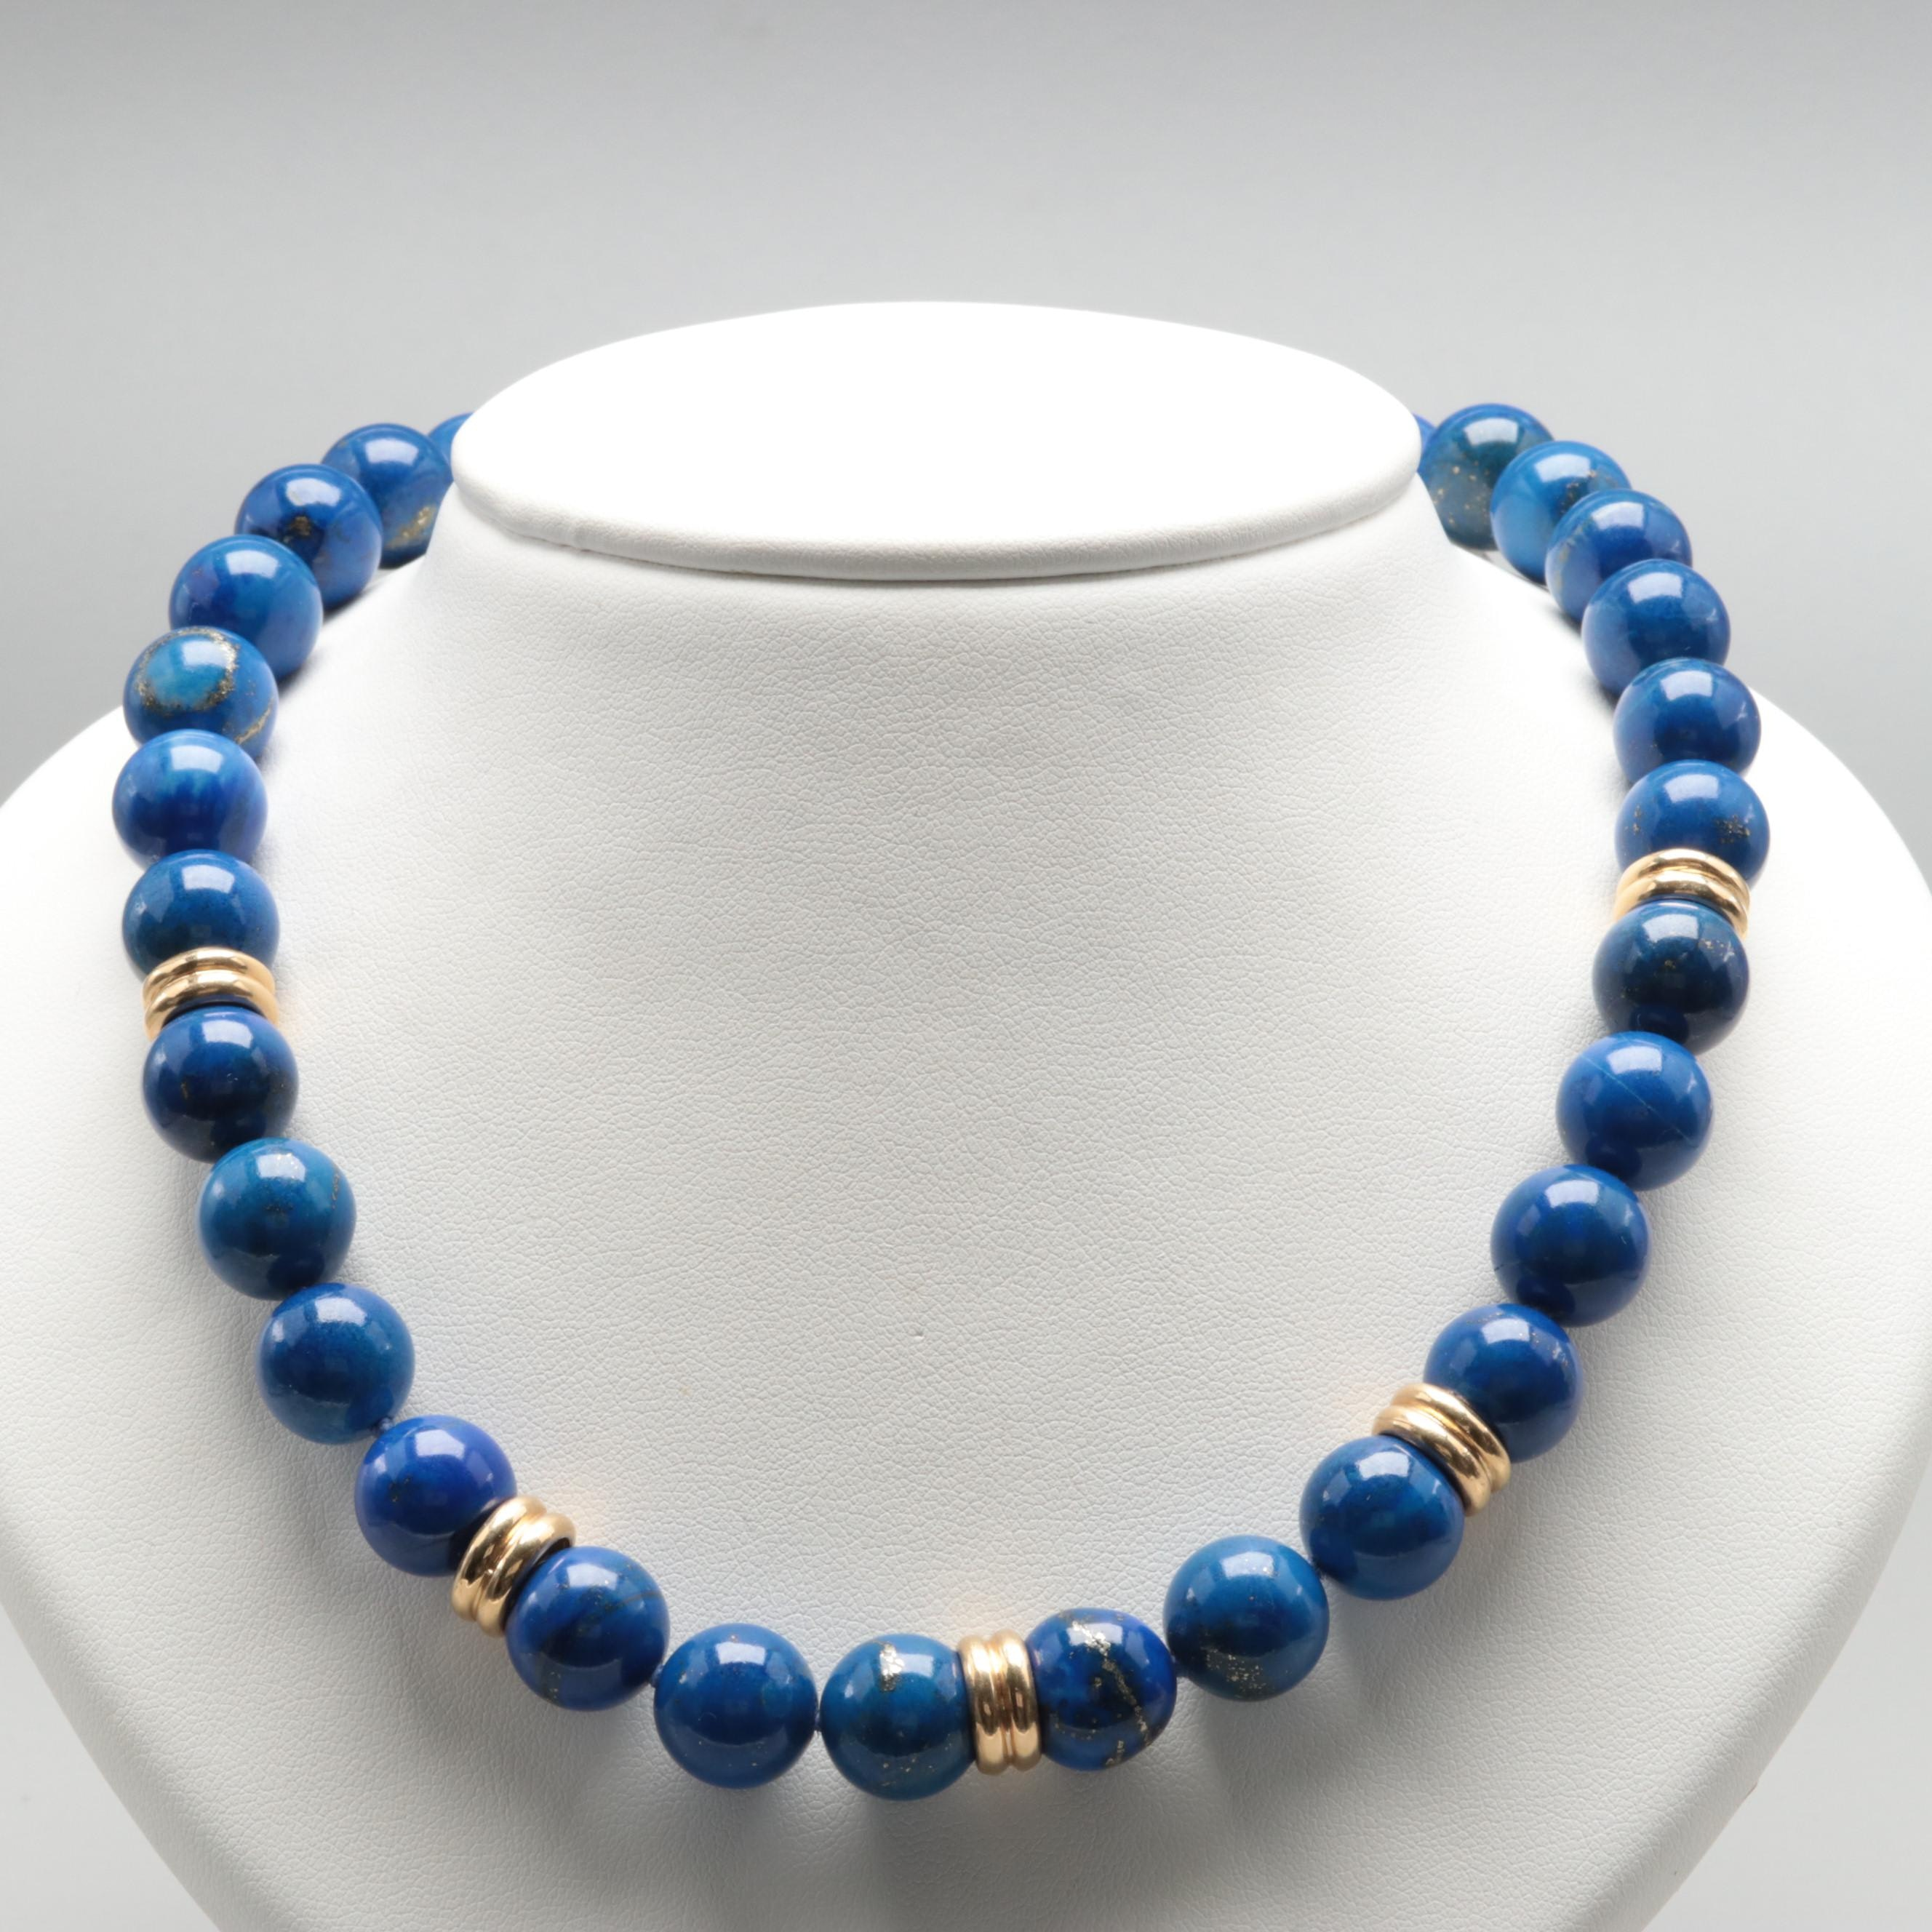 14K Yellow Gold Lapis Lazuli Necklace